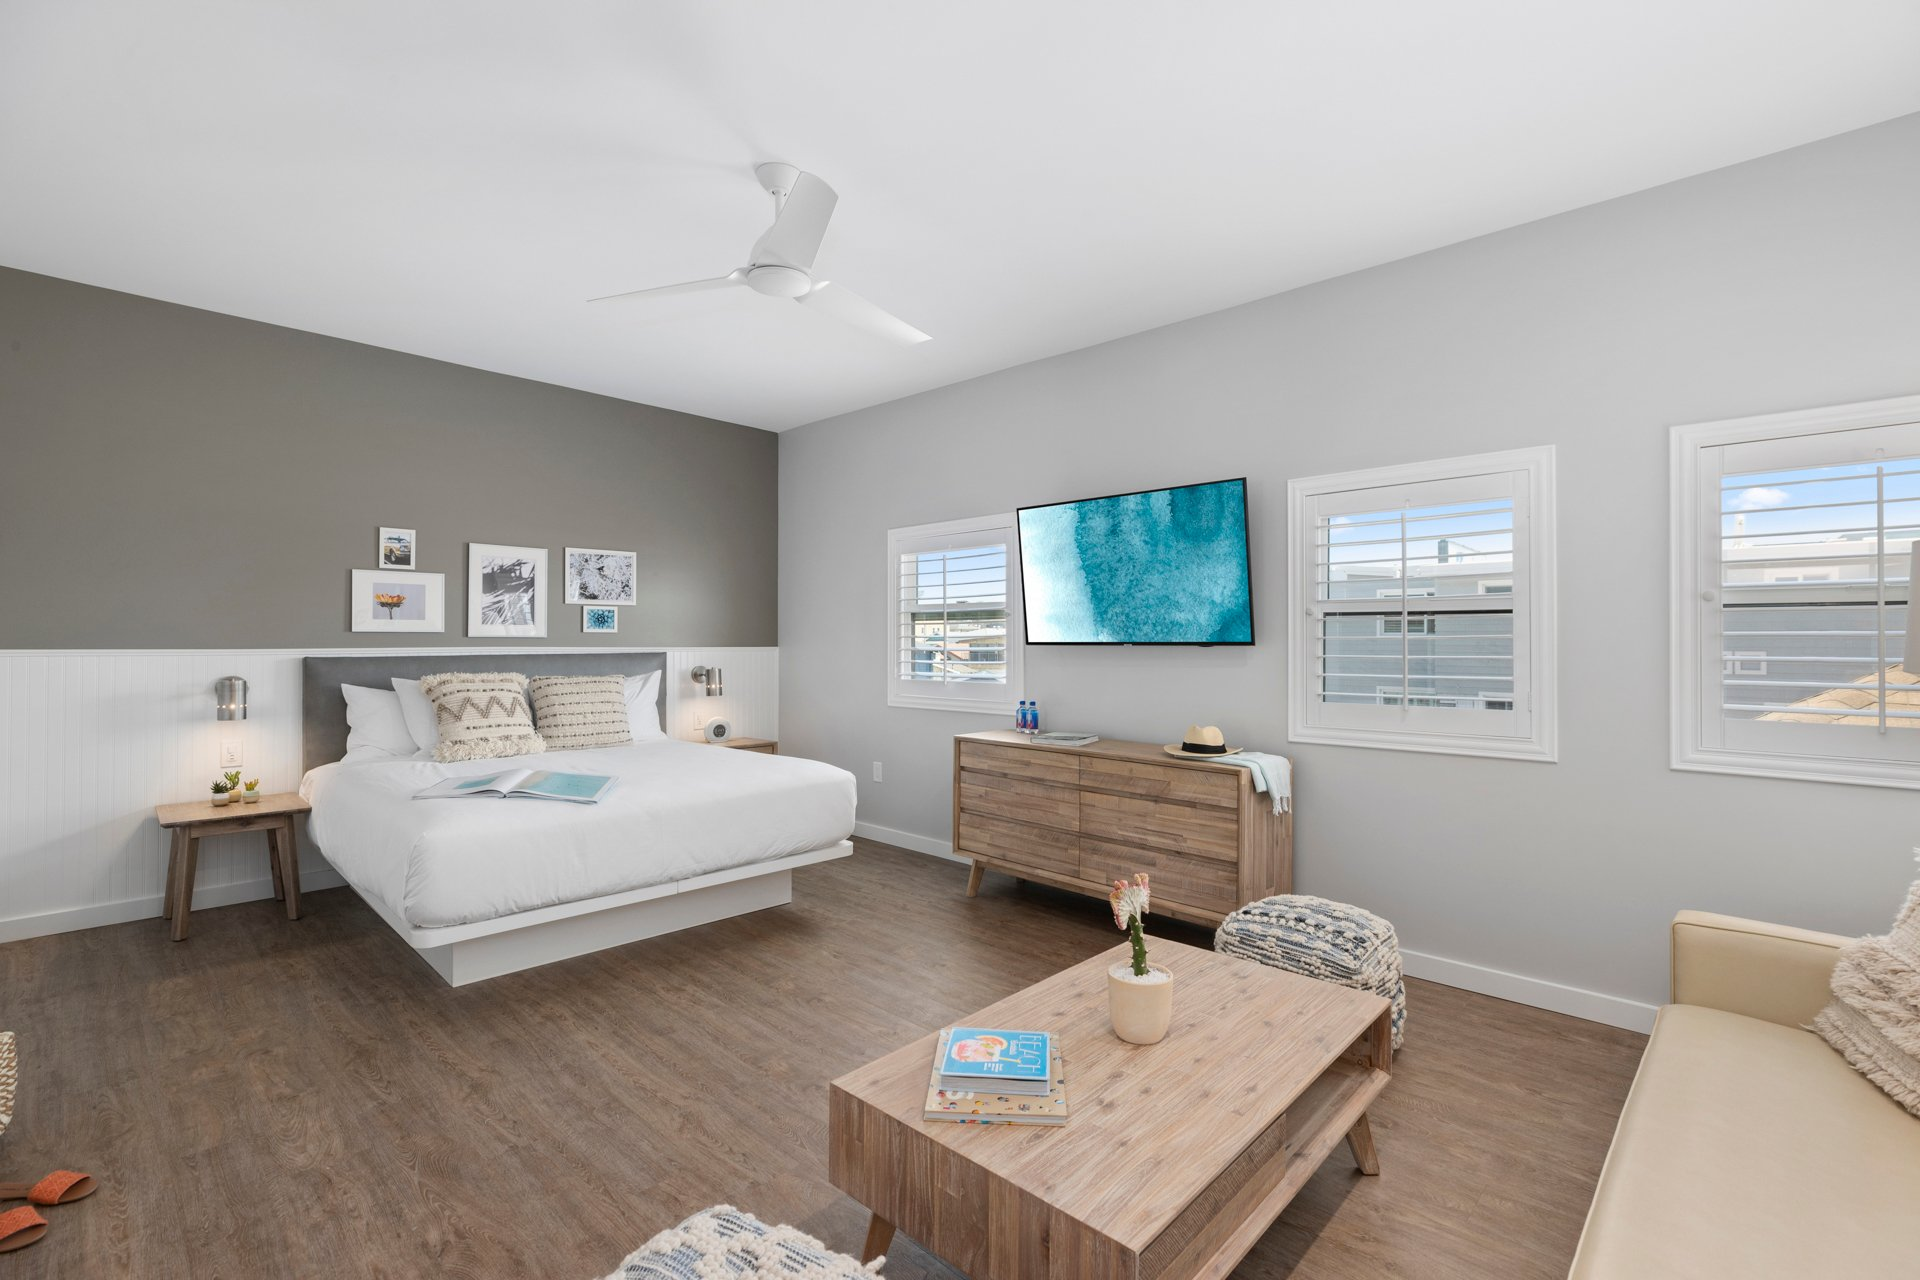 King Junior Suite | 415 sq ft